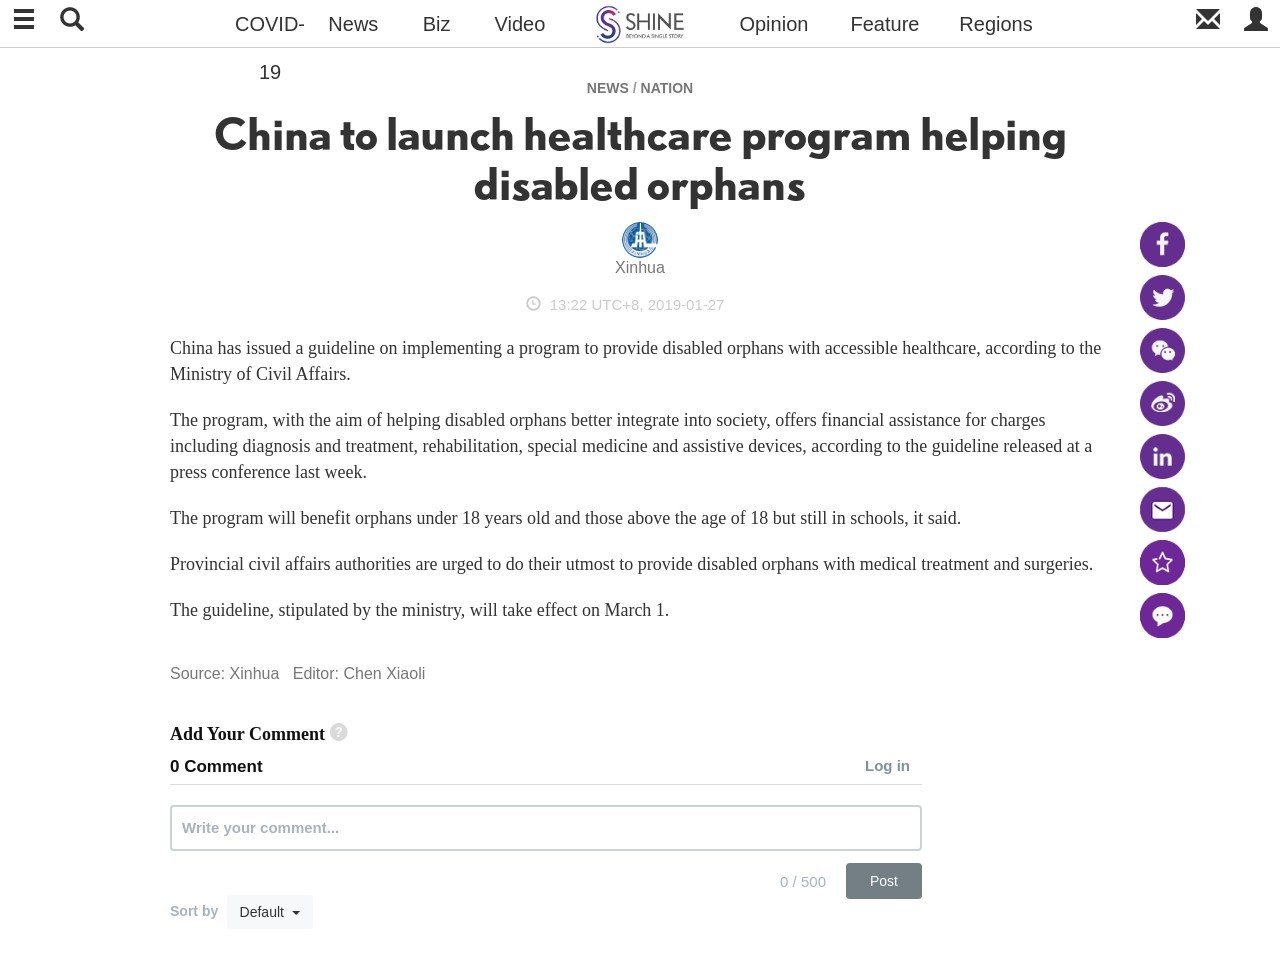 China to launch healthcare program helping disabled orphans